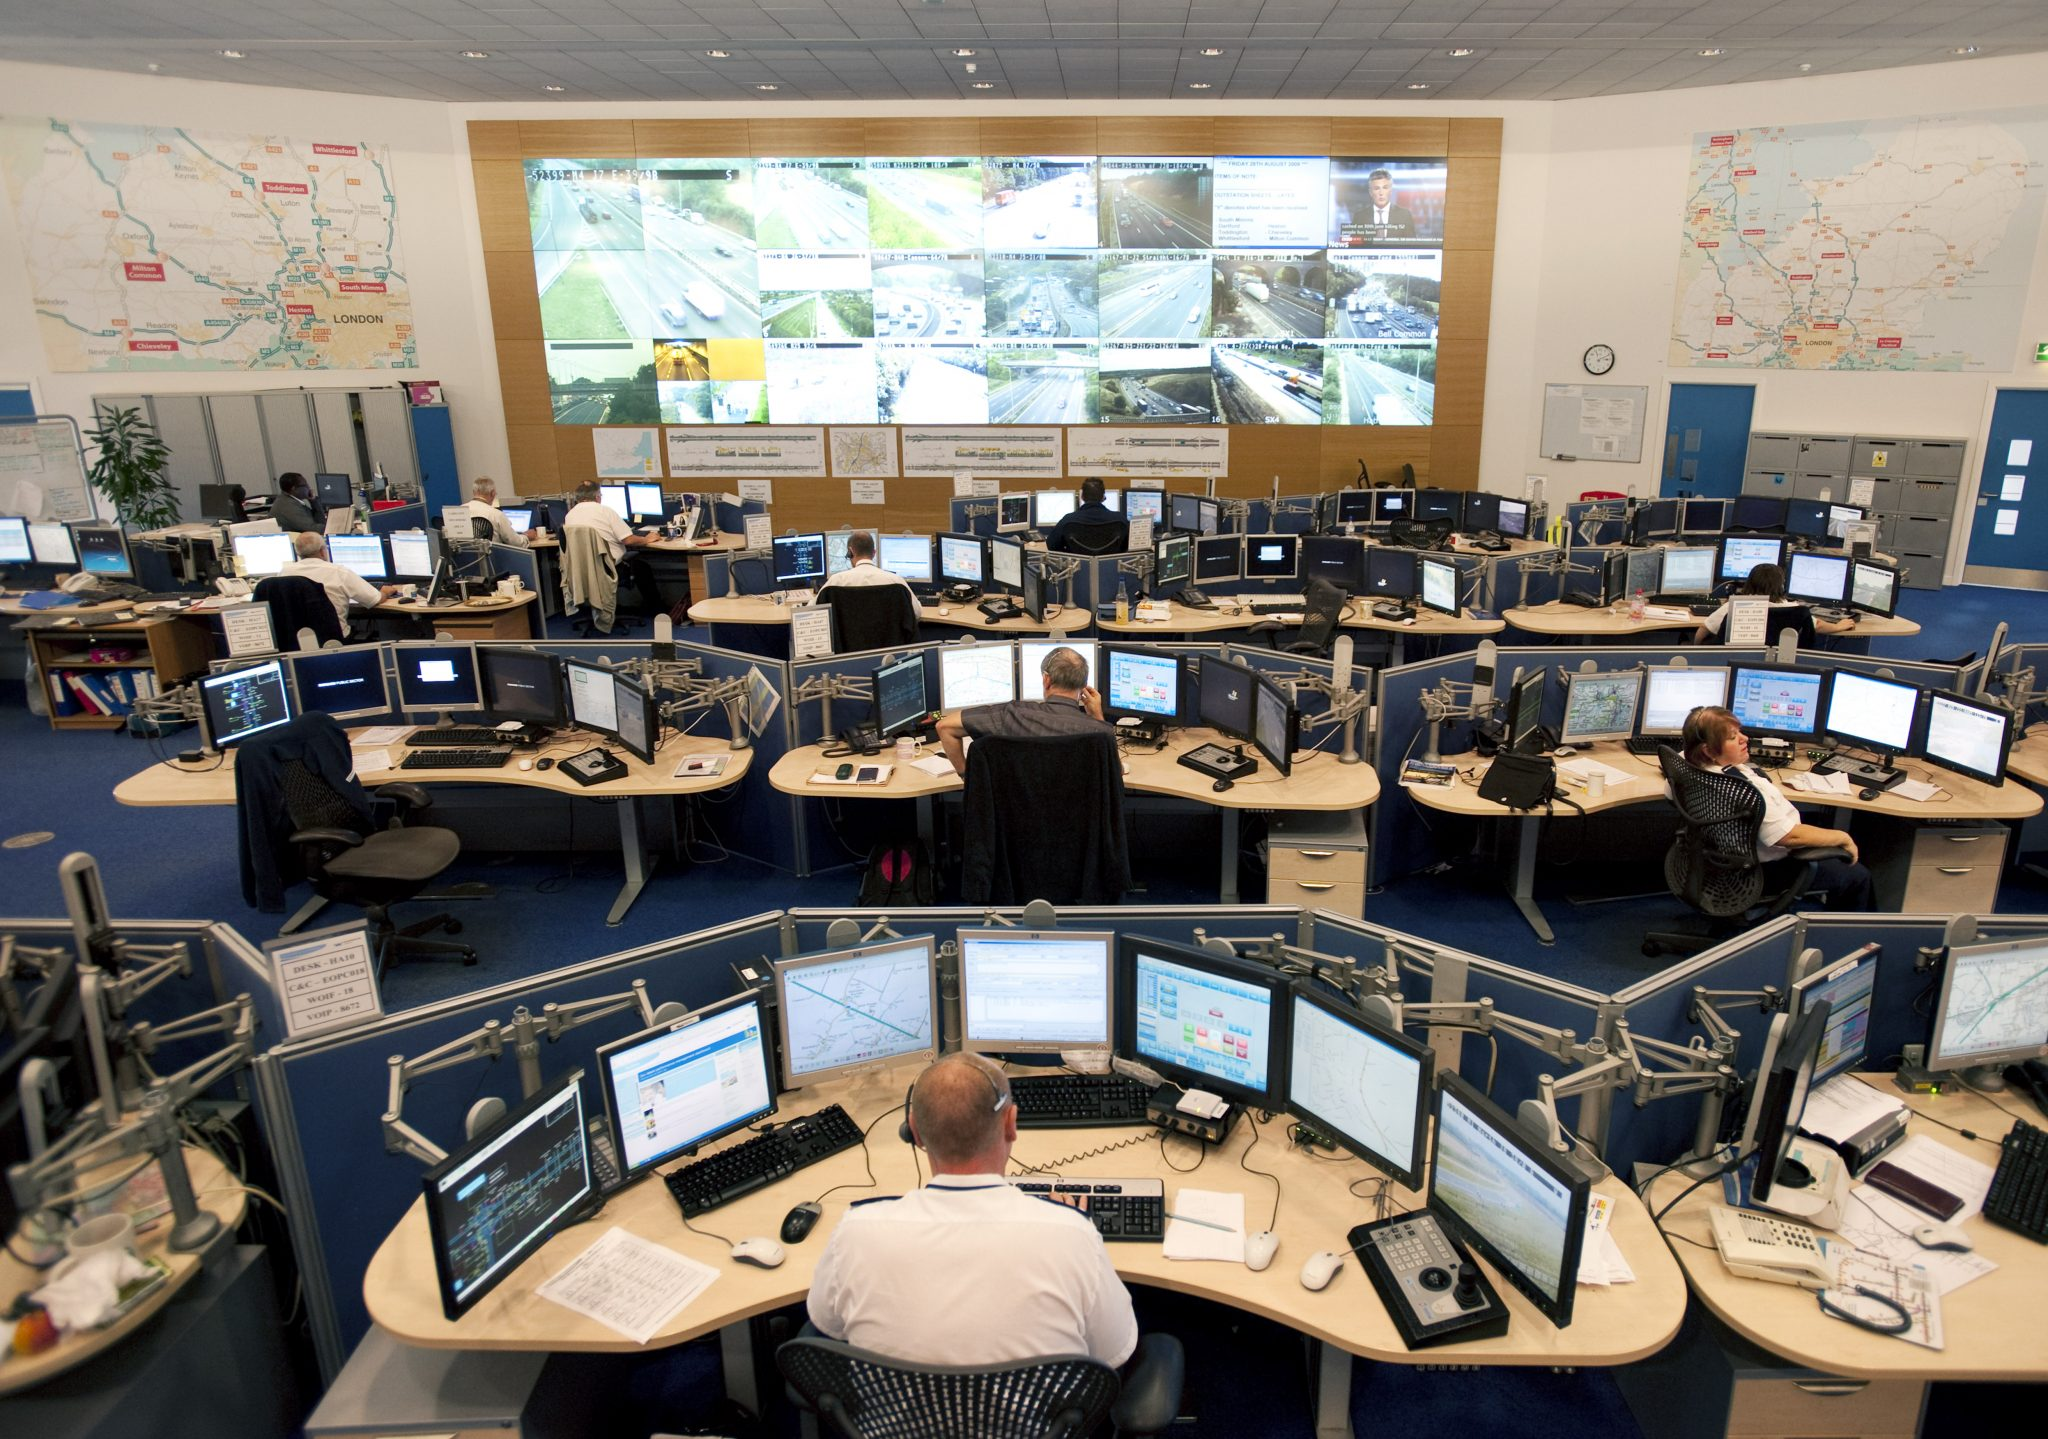 NOC with people and desks